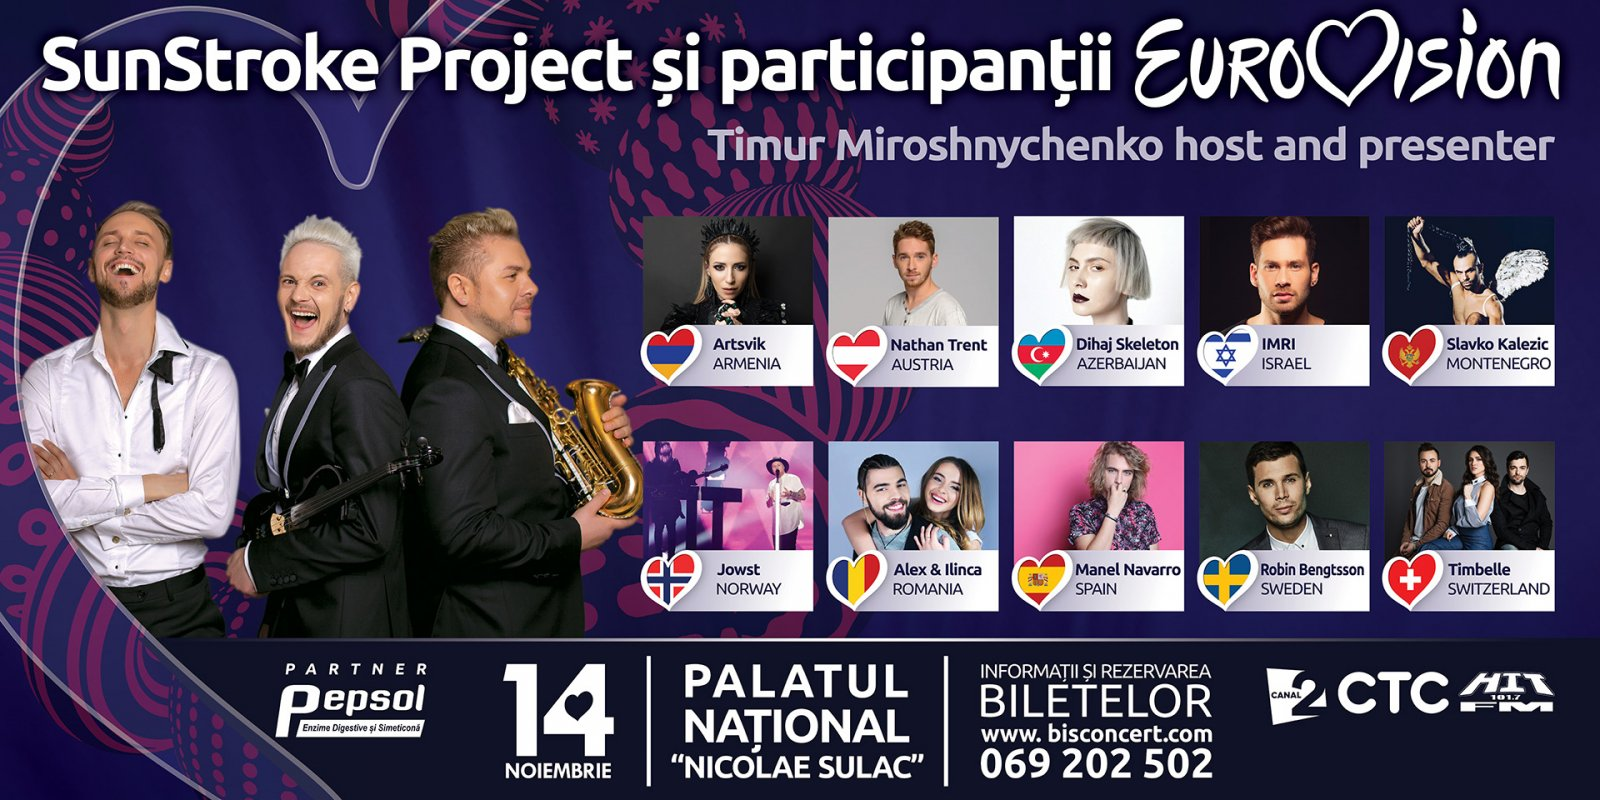 Eurovision Party aduce in Moldova starurile Eurovision 2017